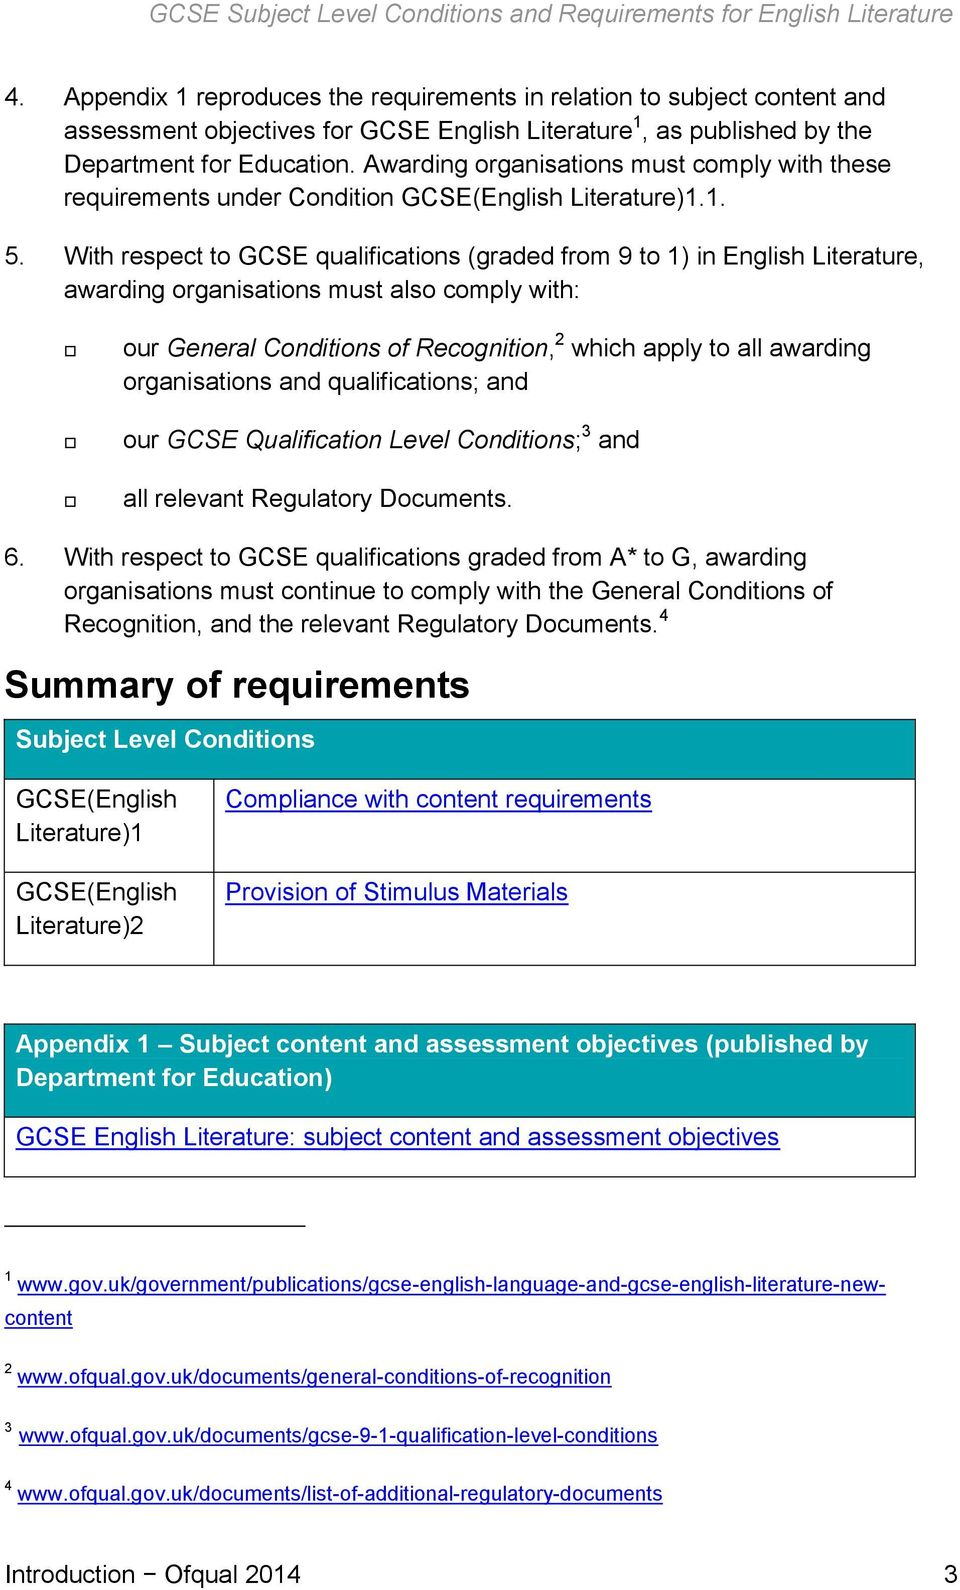 Awarding organisations must comply with these requirements under Condition GCSE(English Literature)1.1. 5.